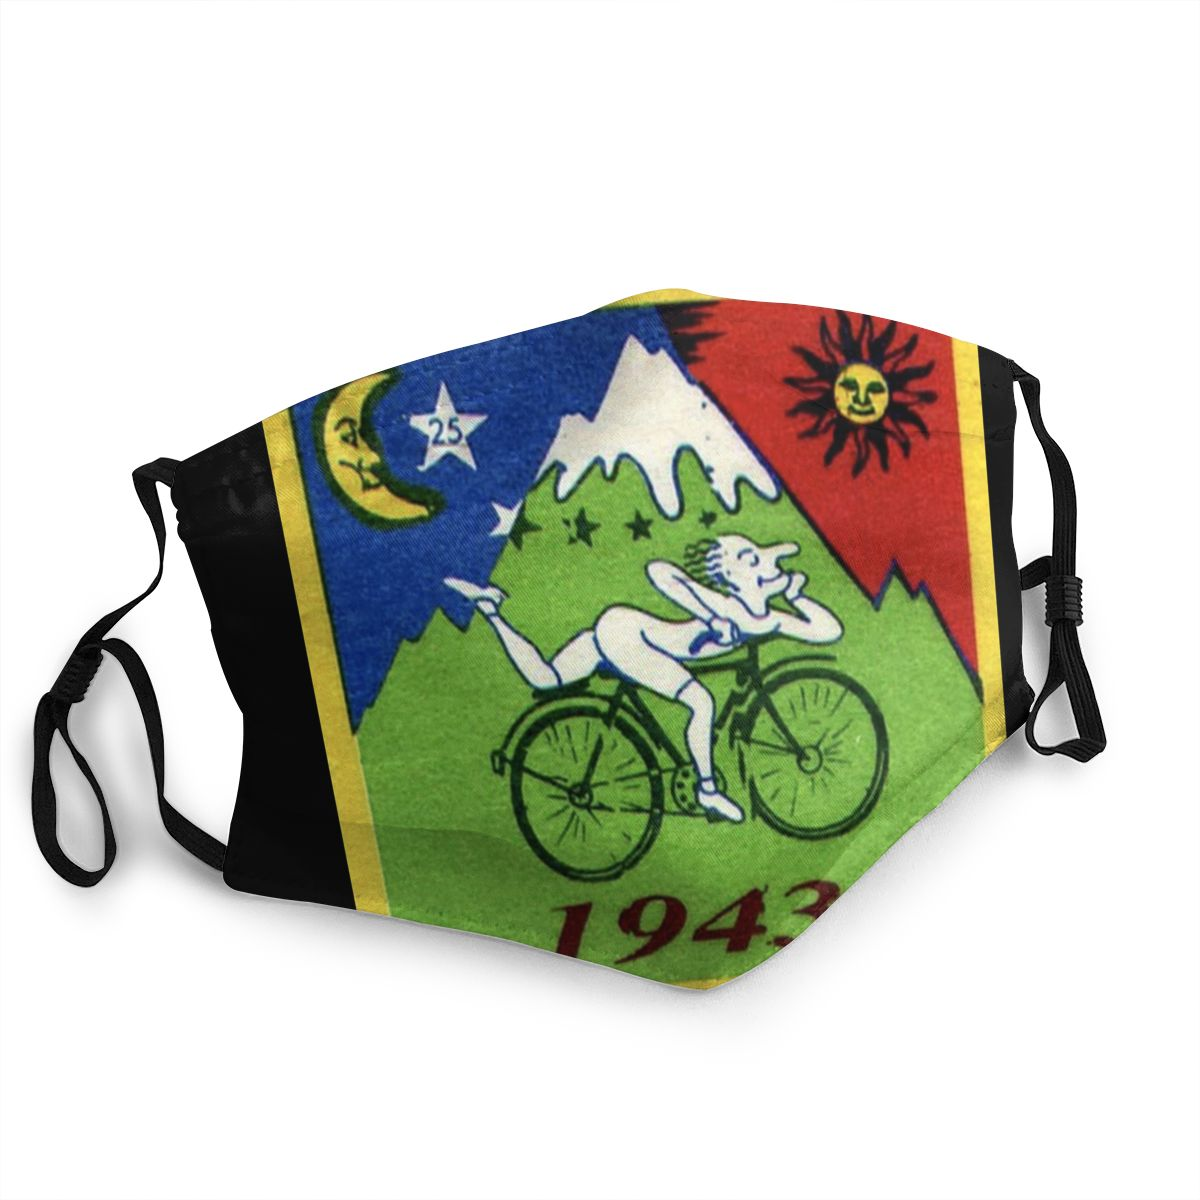 Albert Hoffman LSD Bicycle Day Unisex Non-Disposable Face Mask Anti Bacterial Dustproof Protection Cover Respirator